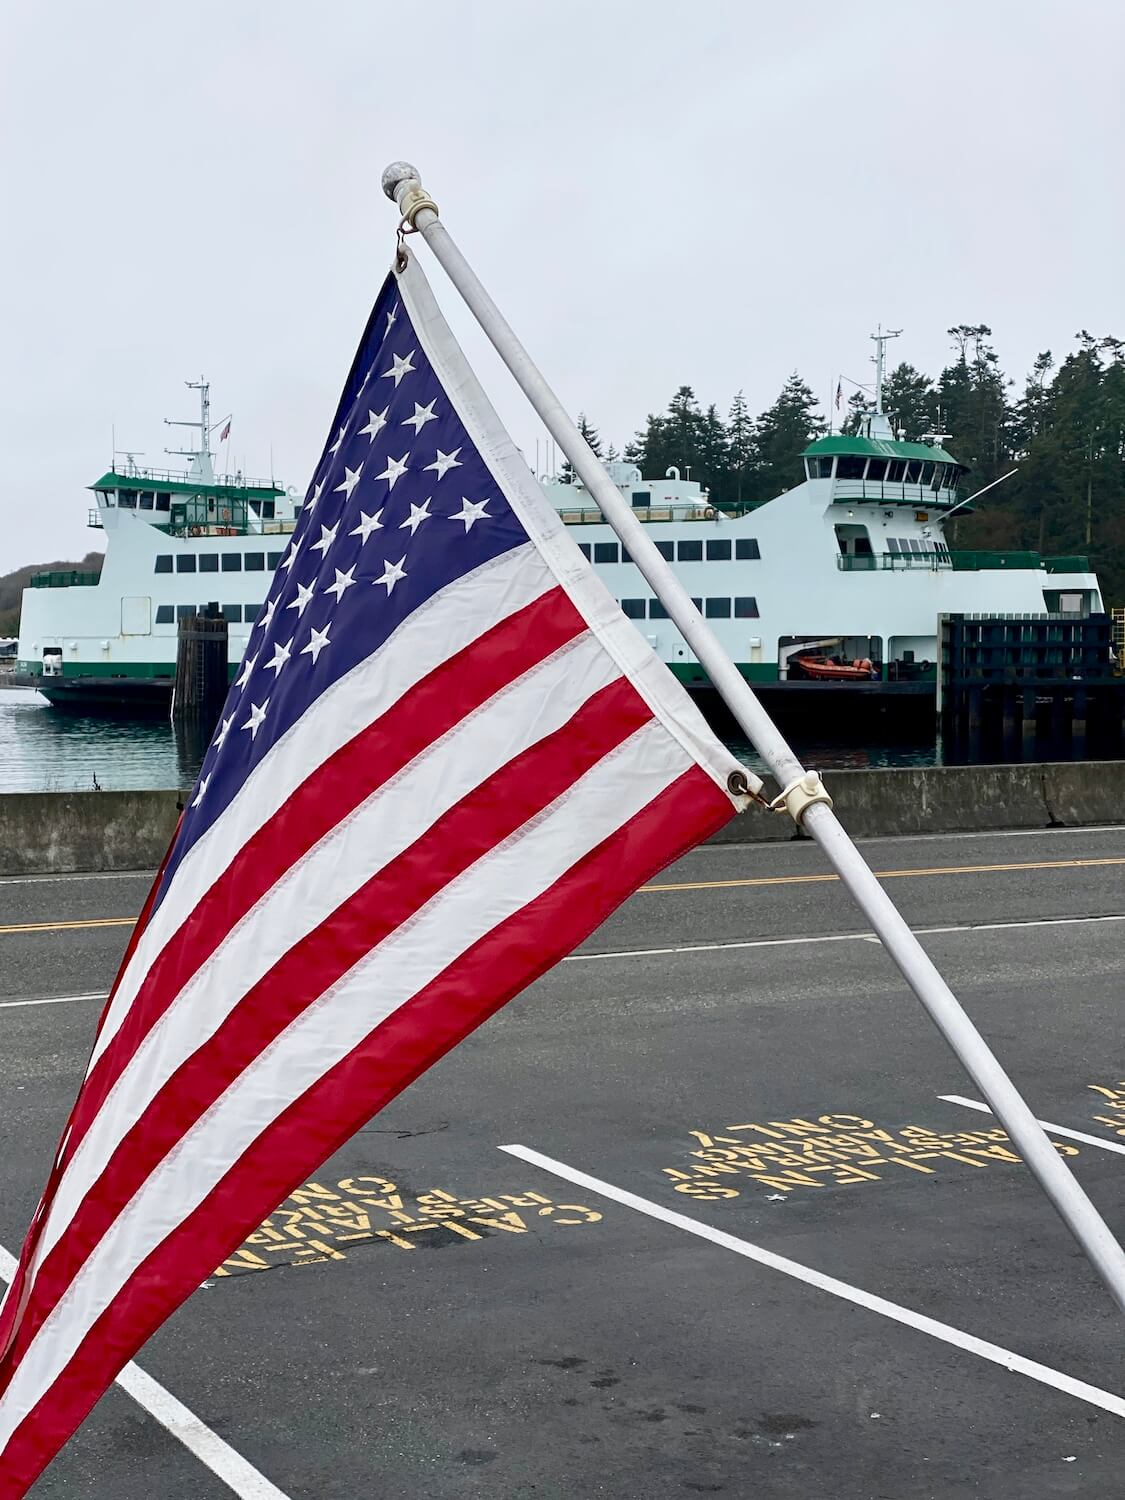 An American flag flies in front of a restaurant while a Washington State Ferry pulls into the dock at Coupeville. The ferry is painted white with green trim.